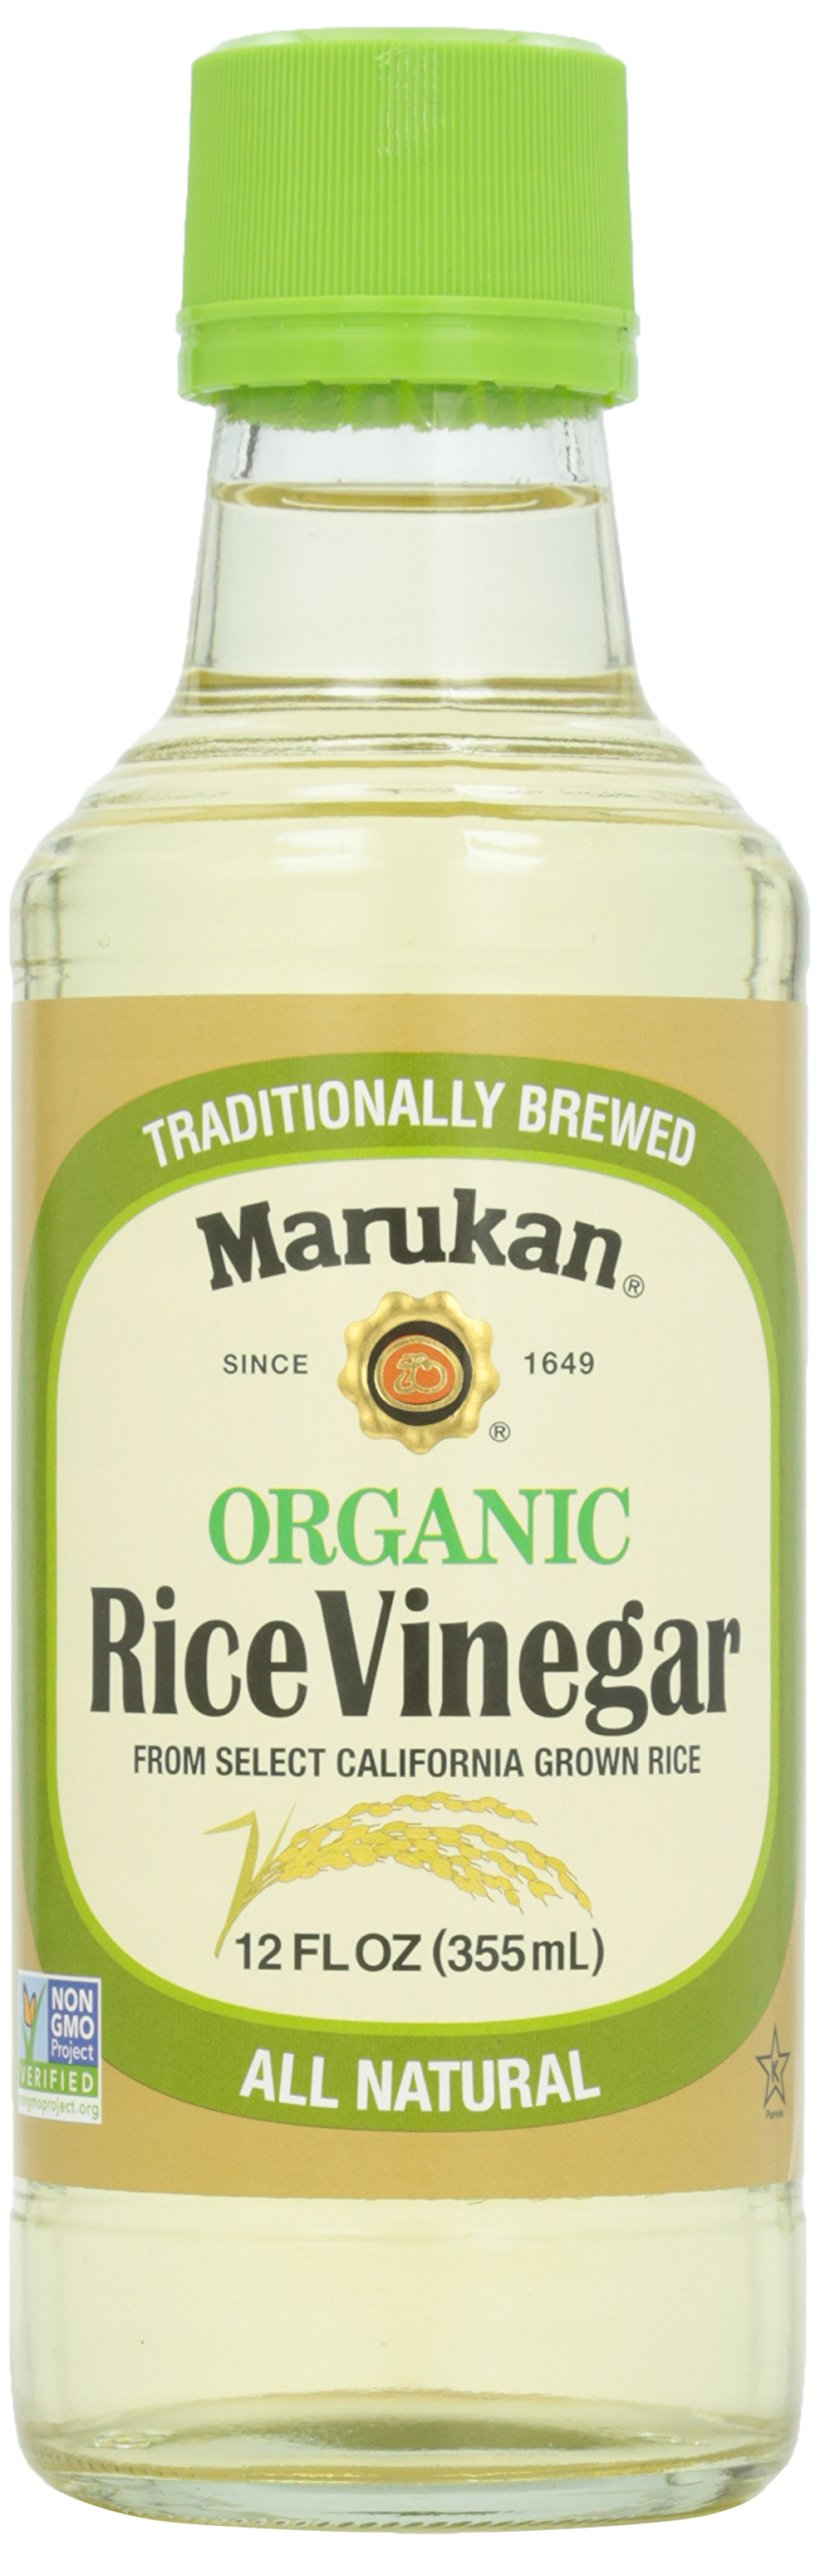 Marukan, Organic Rice Vinegar, 12 oz